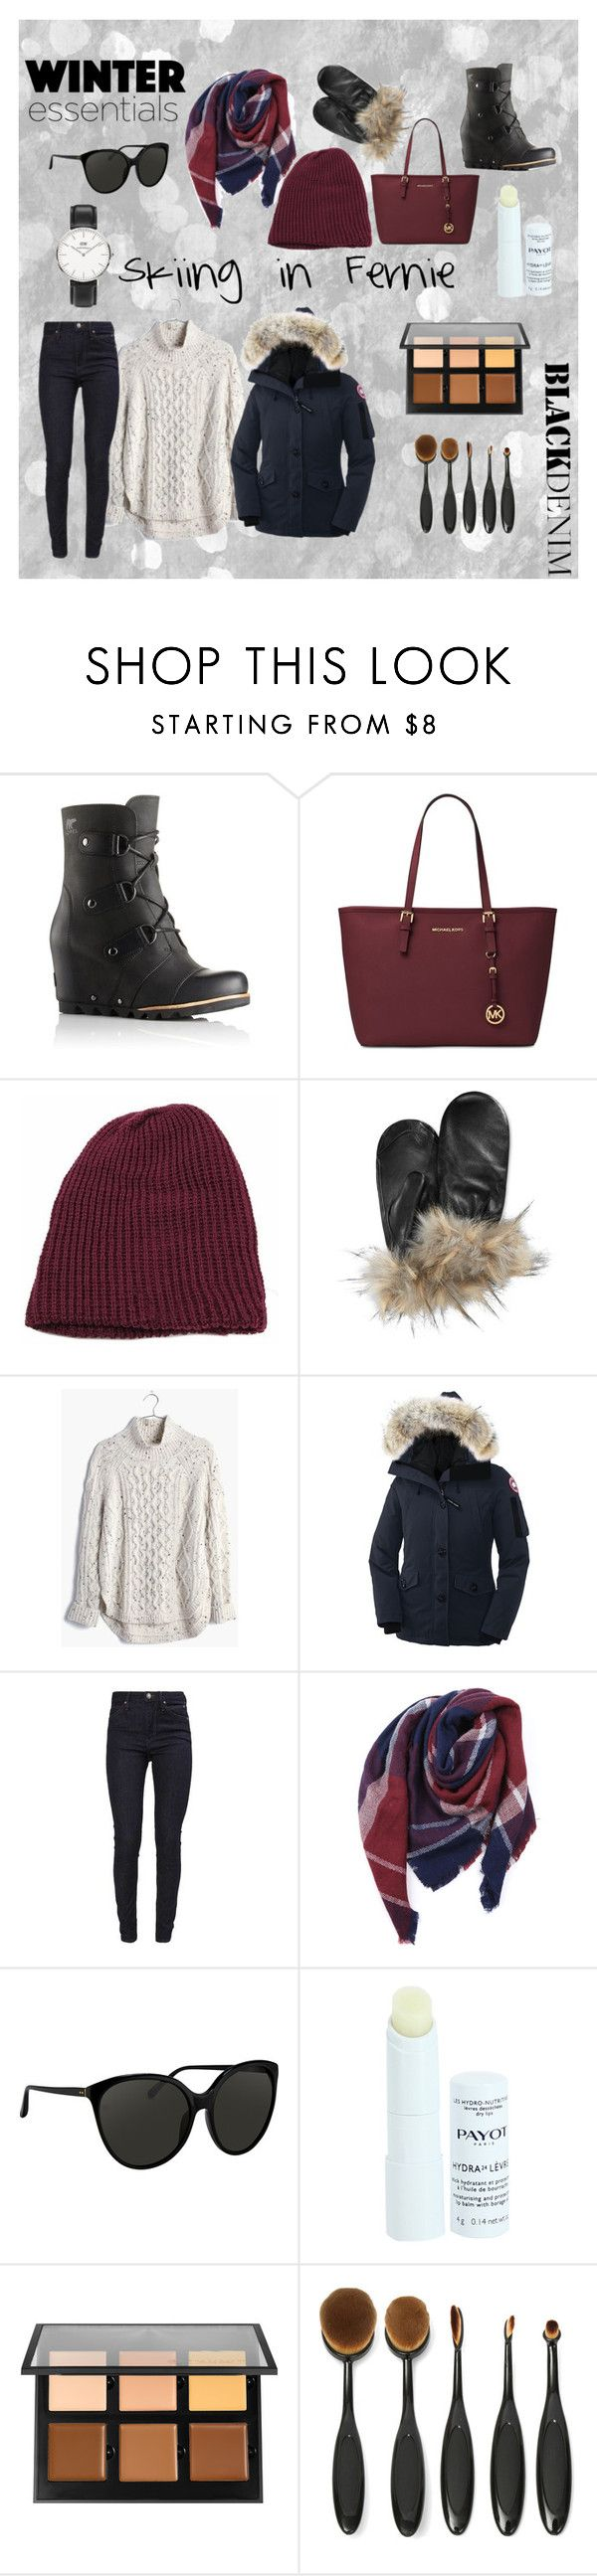 """""""Winter Essentials for Skiing in Fernie B.C"""" by aelizad16 ❤ liked on Polyvore featuring SOREL, Michael Kors, Charter Club, Madewell, Canada Goose, Calvin Klein, Everest, Payot, Anastasia Beverly Hills and Daniel Wellington"""